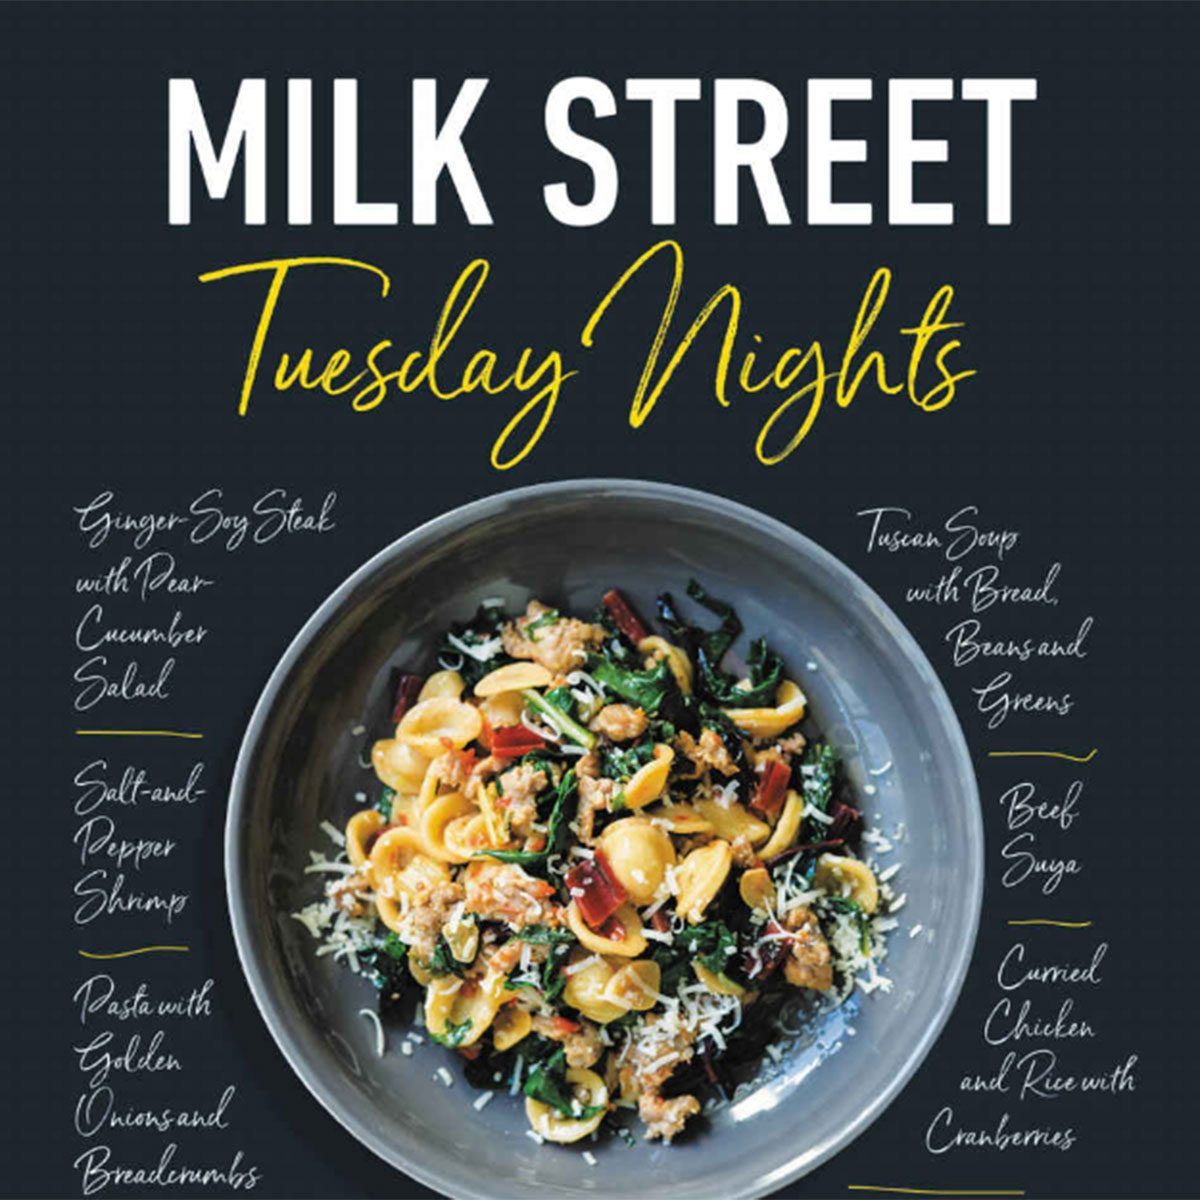 Milk Street: Tuesday Nights; by Christopher Kimball